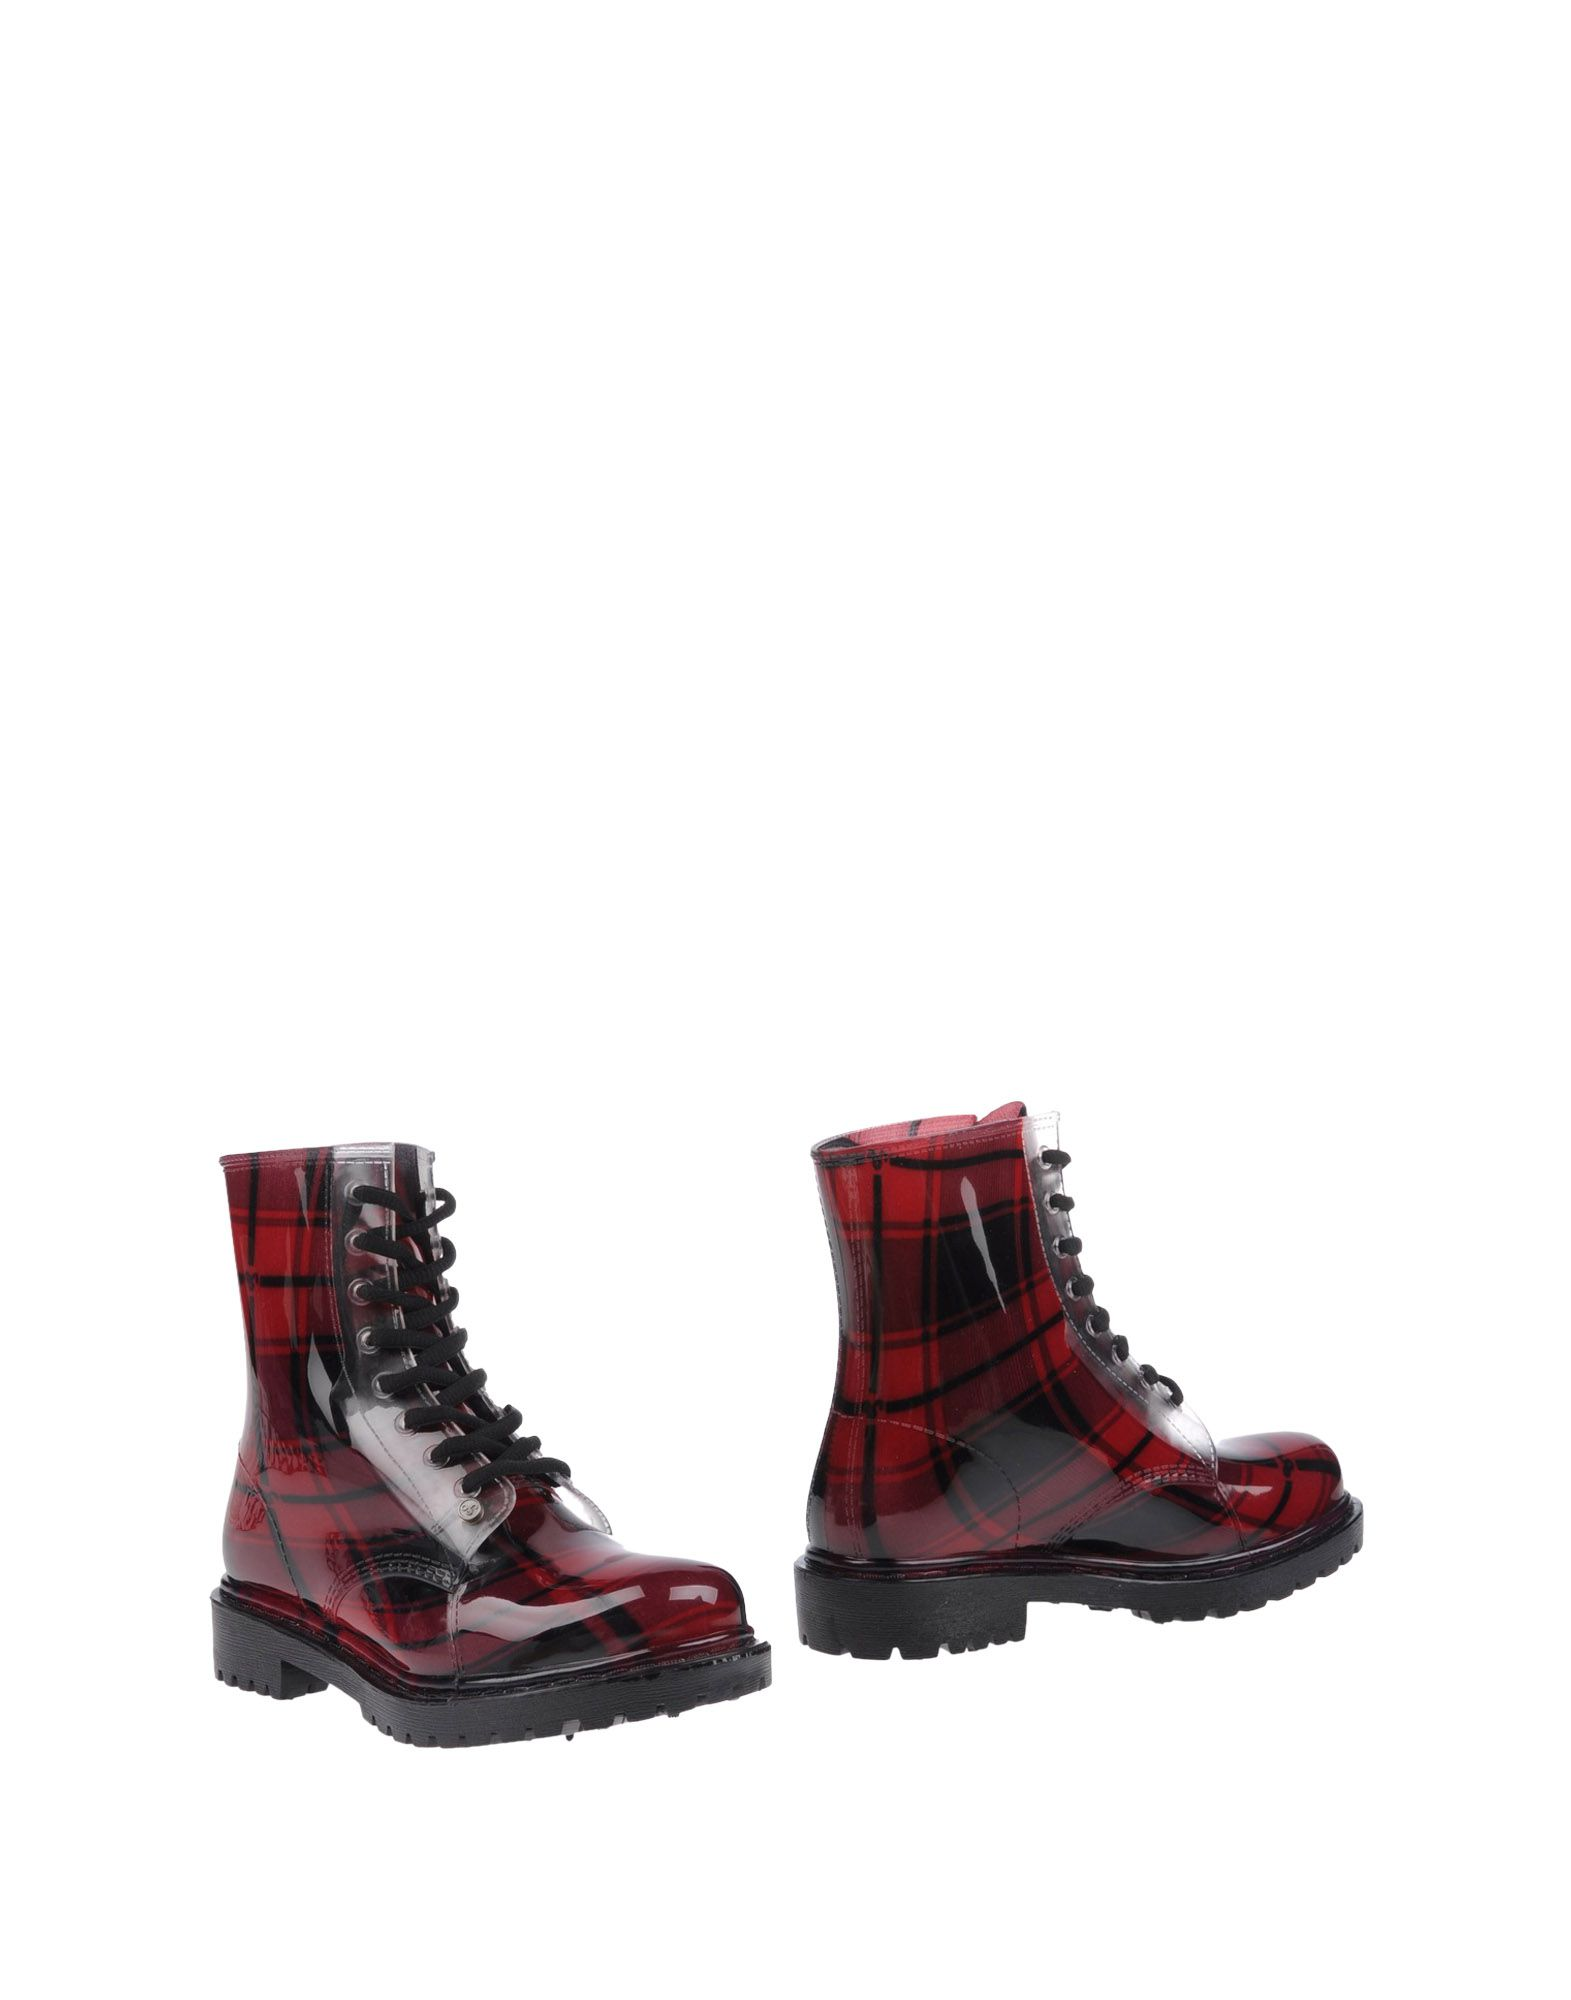 G SIX WORKSHOP Ankle Boots in Maroon